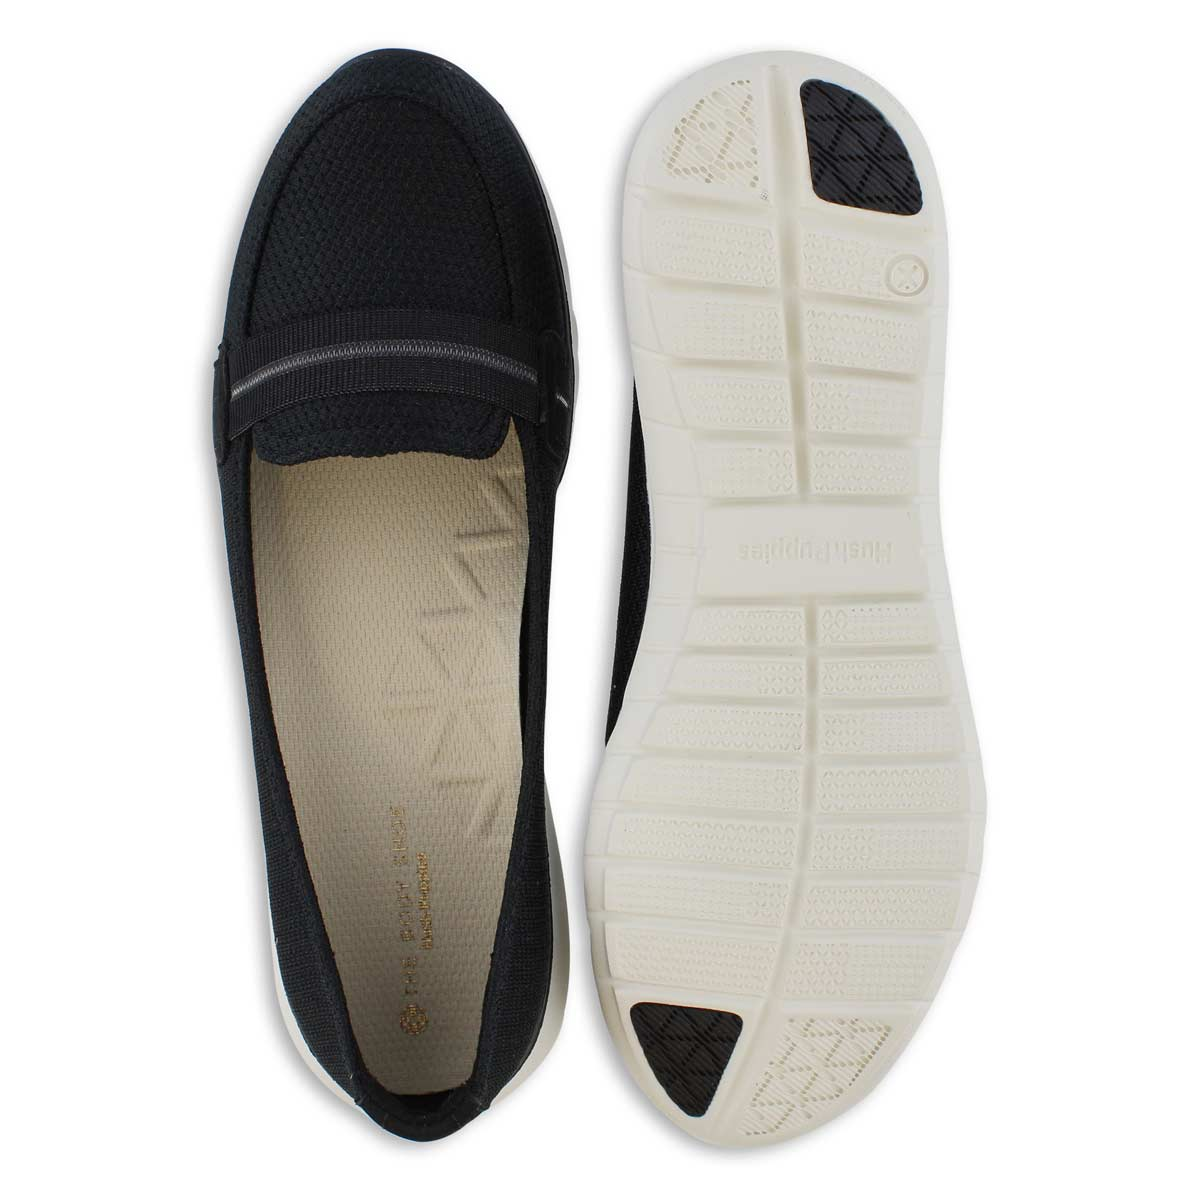 Lds Tricia Band black casual loafer